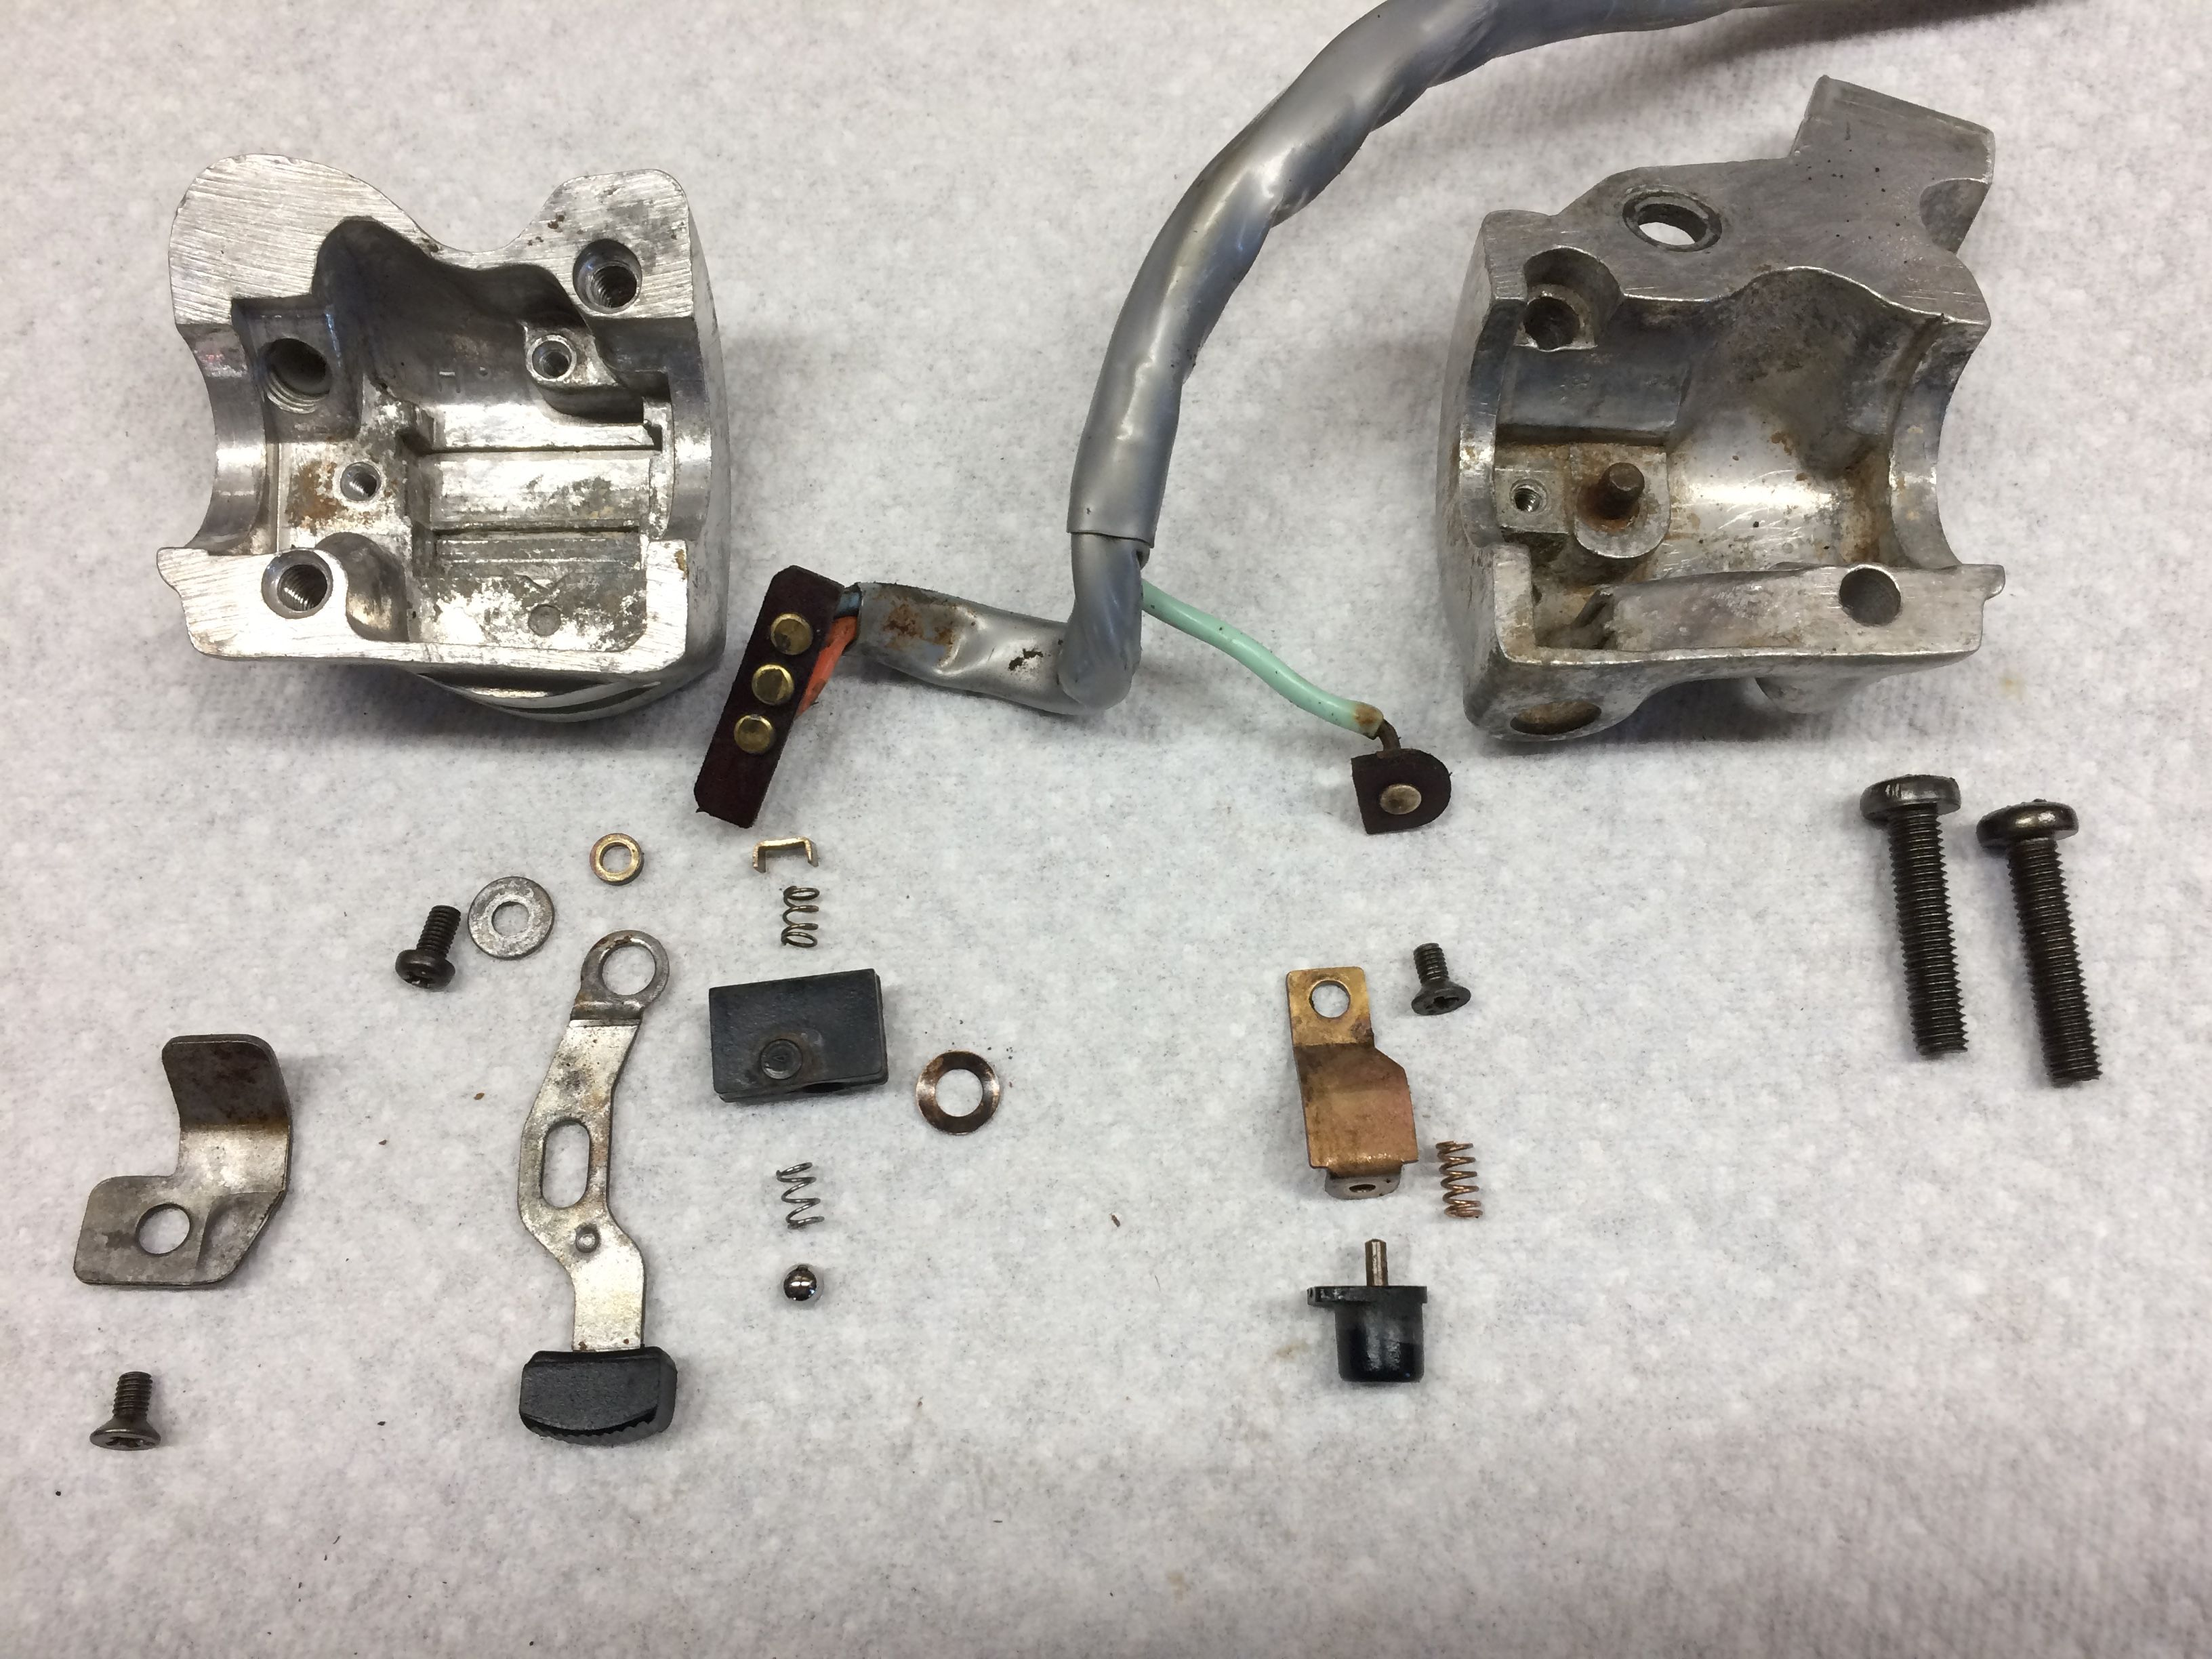 medium resolution of reassembling a honda ct90 horn and turn signal switch assembly may look difficult but it really isn t all that bad and i have provided detailed